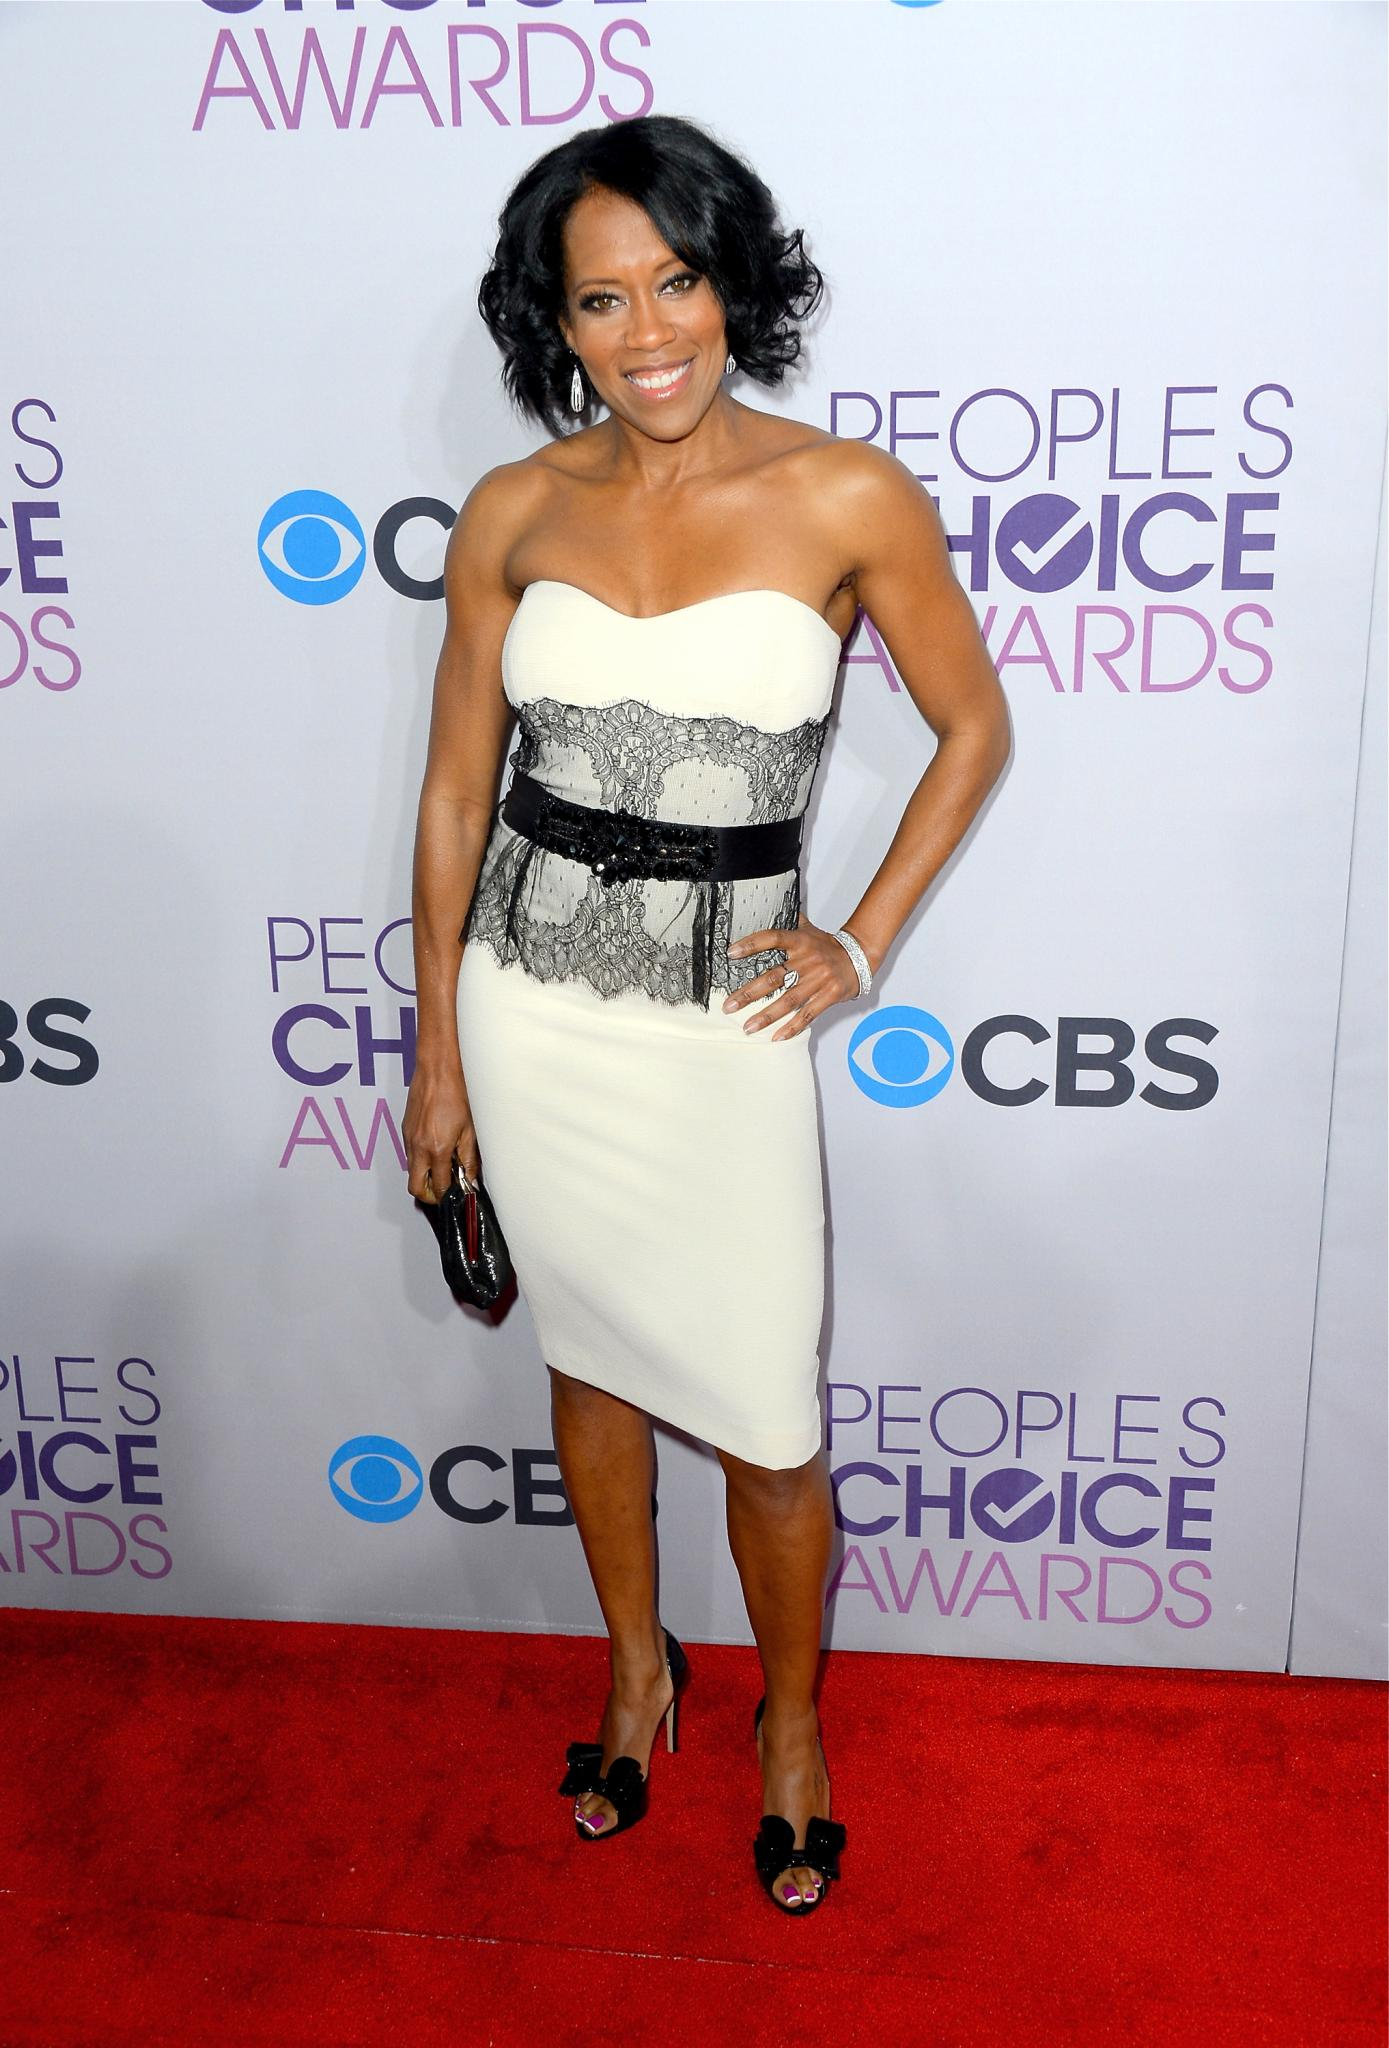 b776fc150b Live from the 2013 People s Choice Awards. See who rocked the red carpet ...